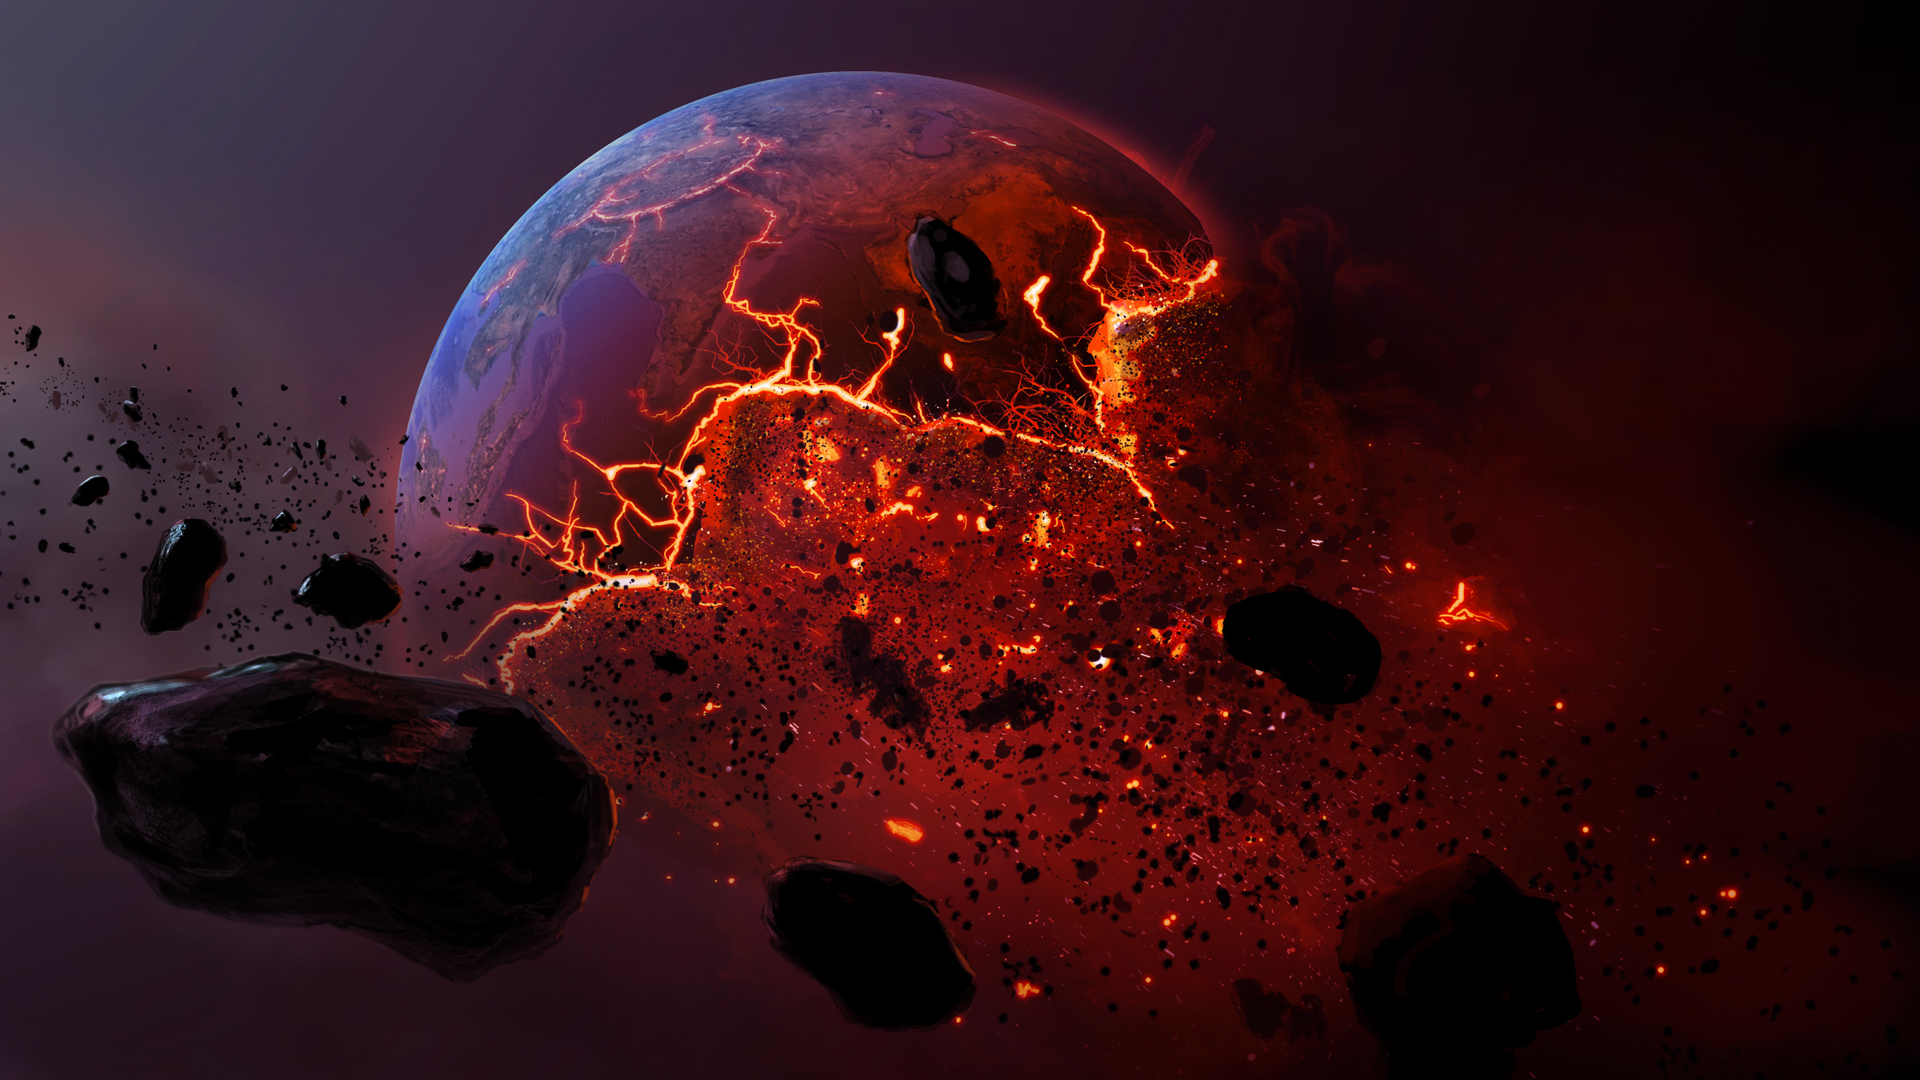 meteor burning earth planet apocalyptic      h